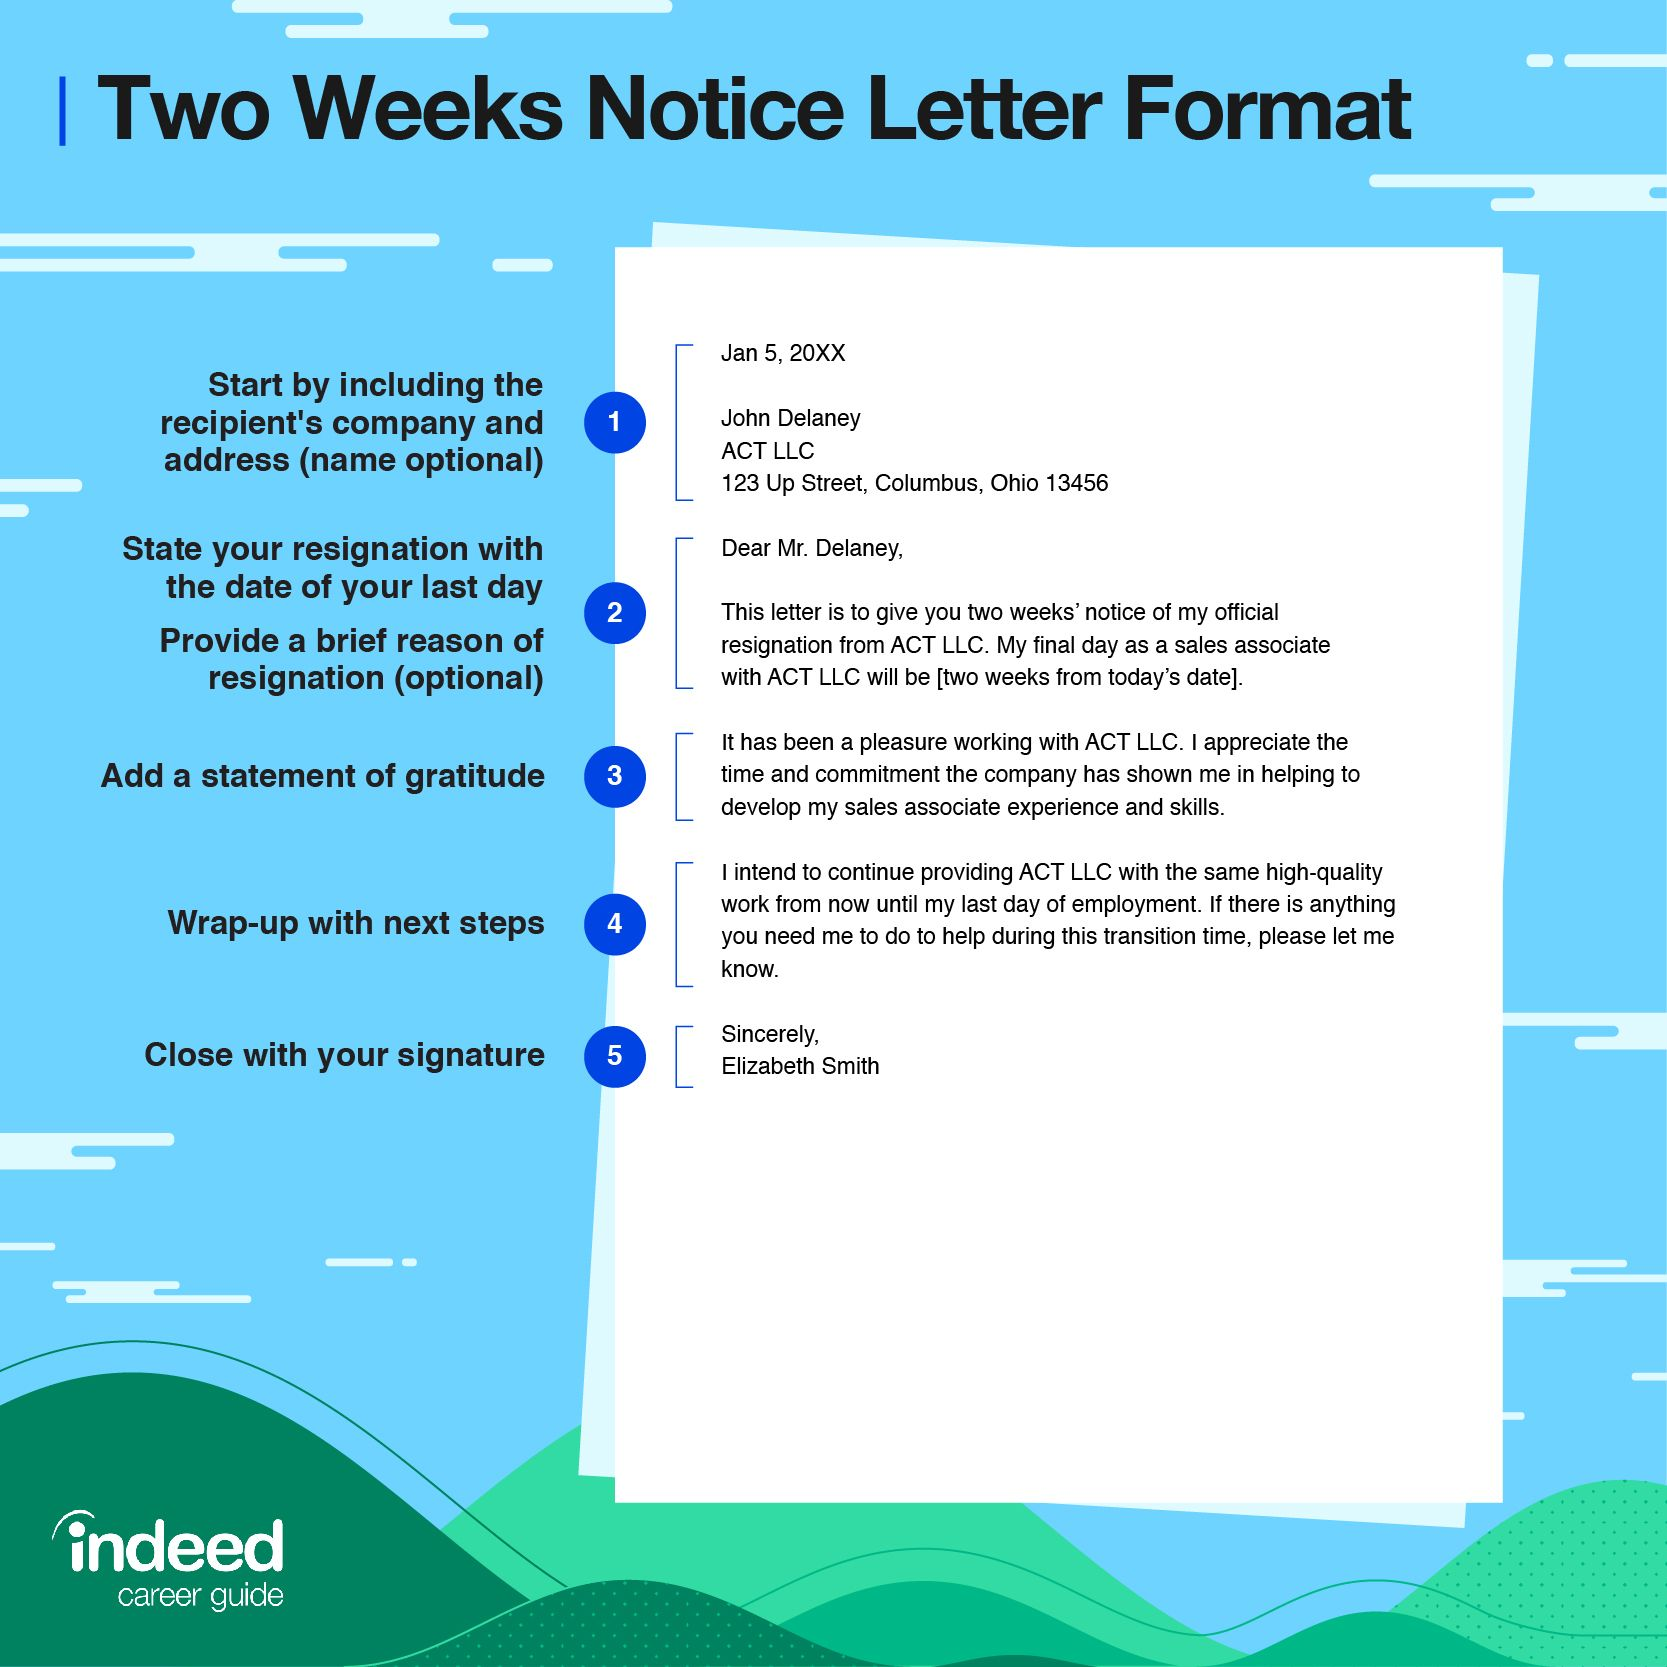 How to Give Two Weeks' Notice (With Examples)